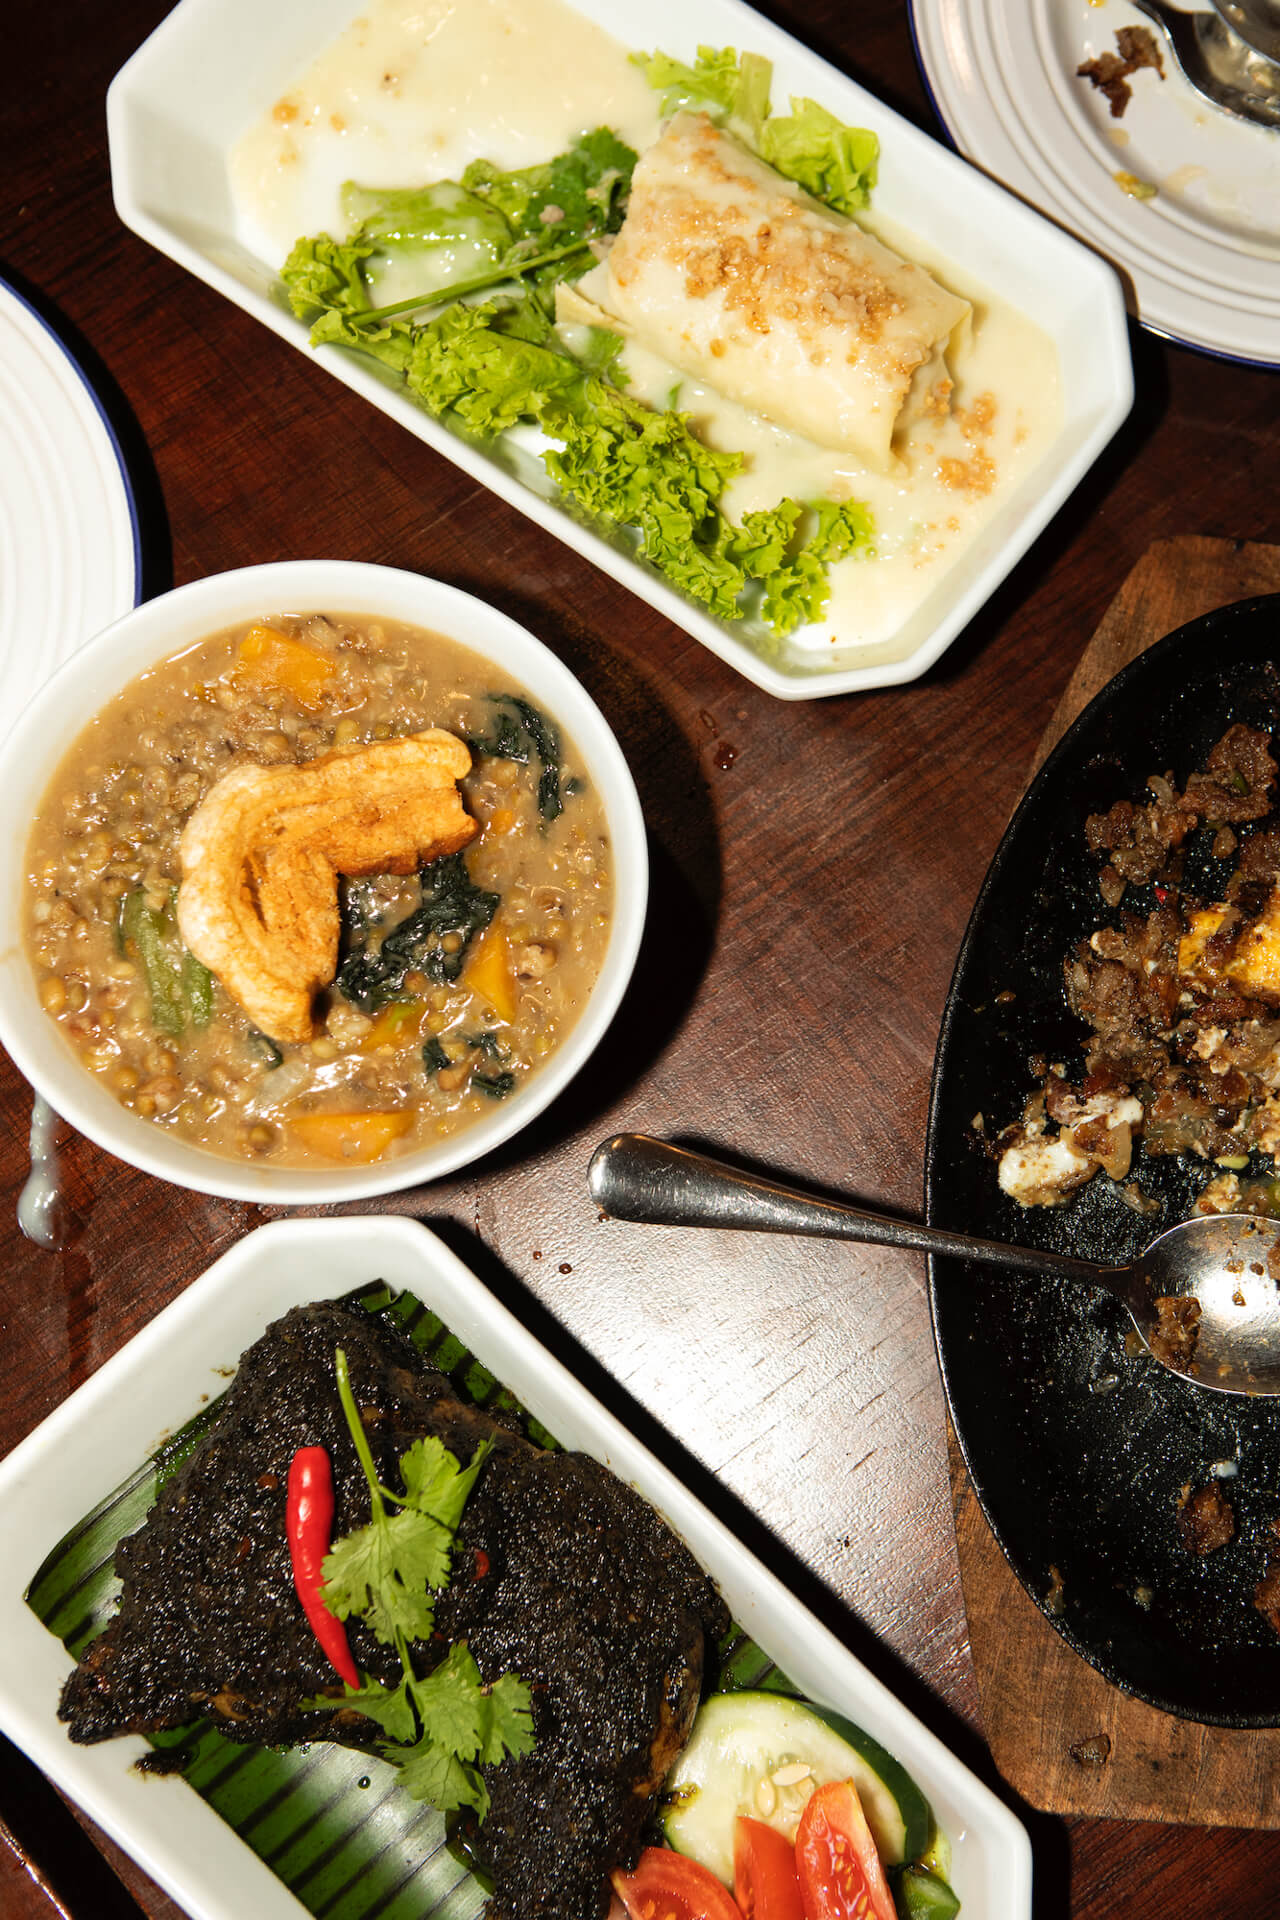 Dishes served at Takaw Eatery